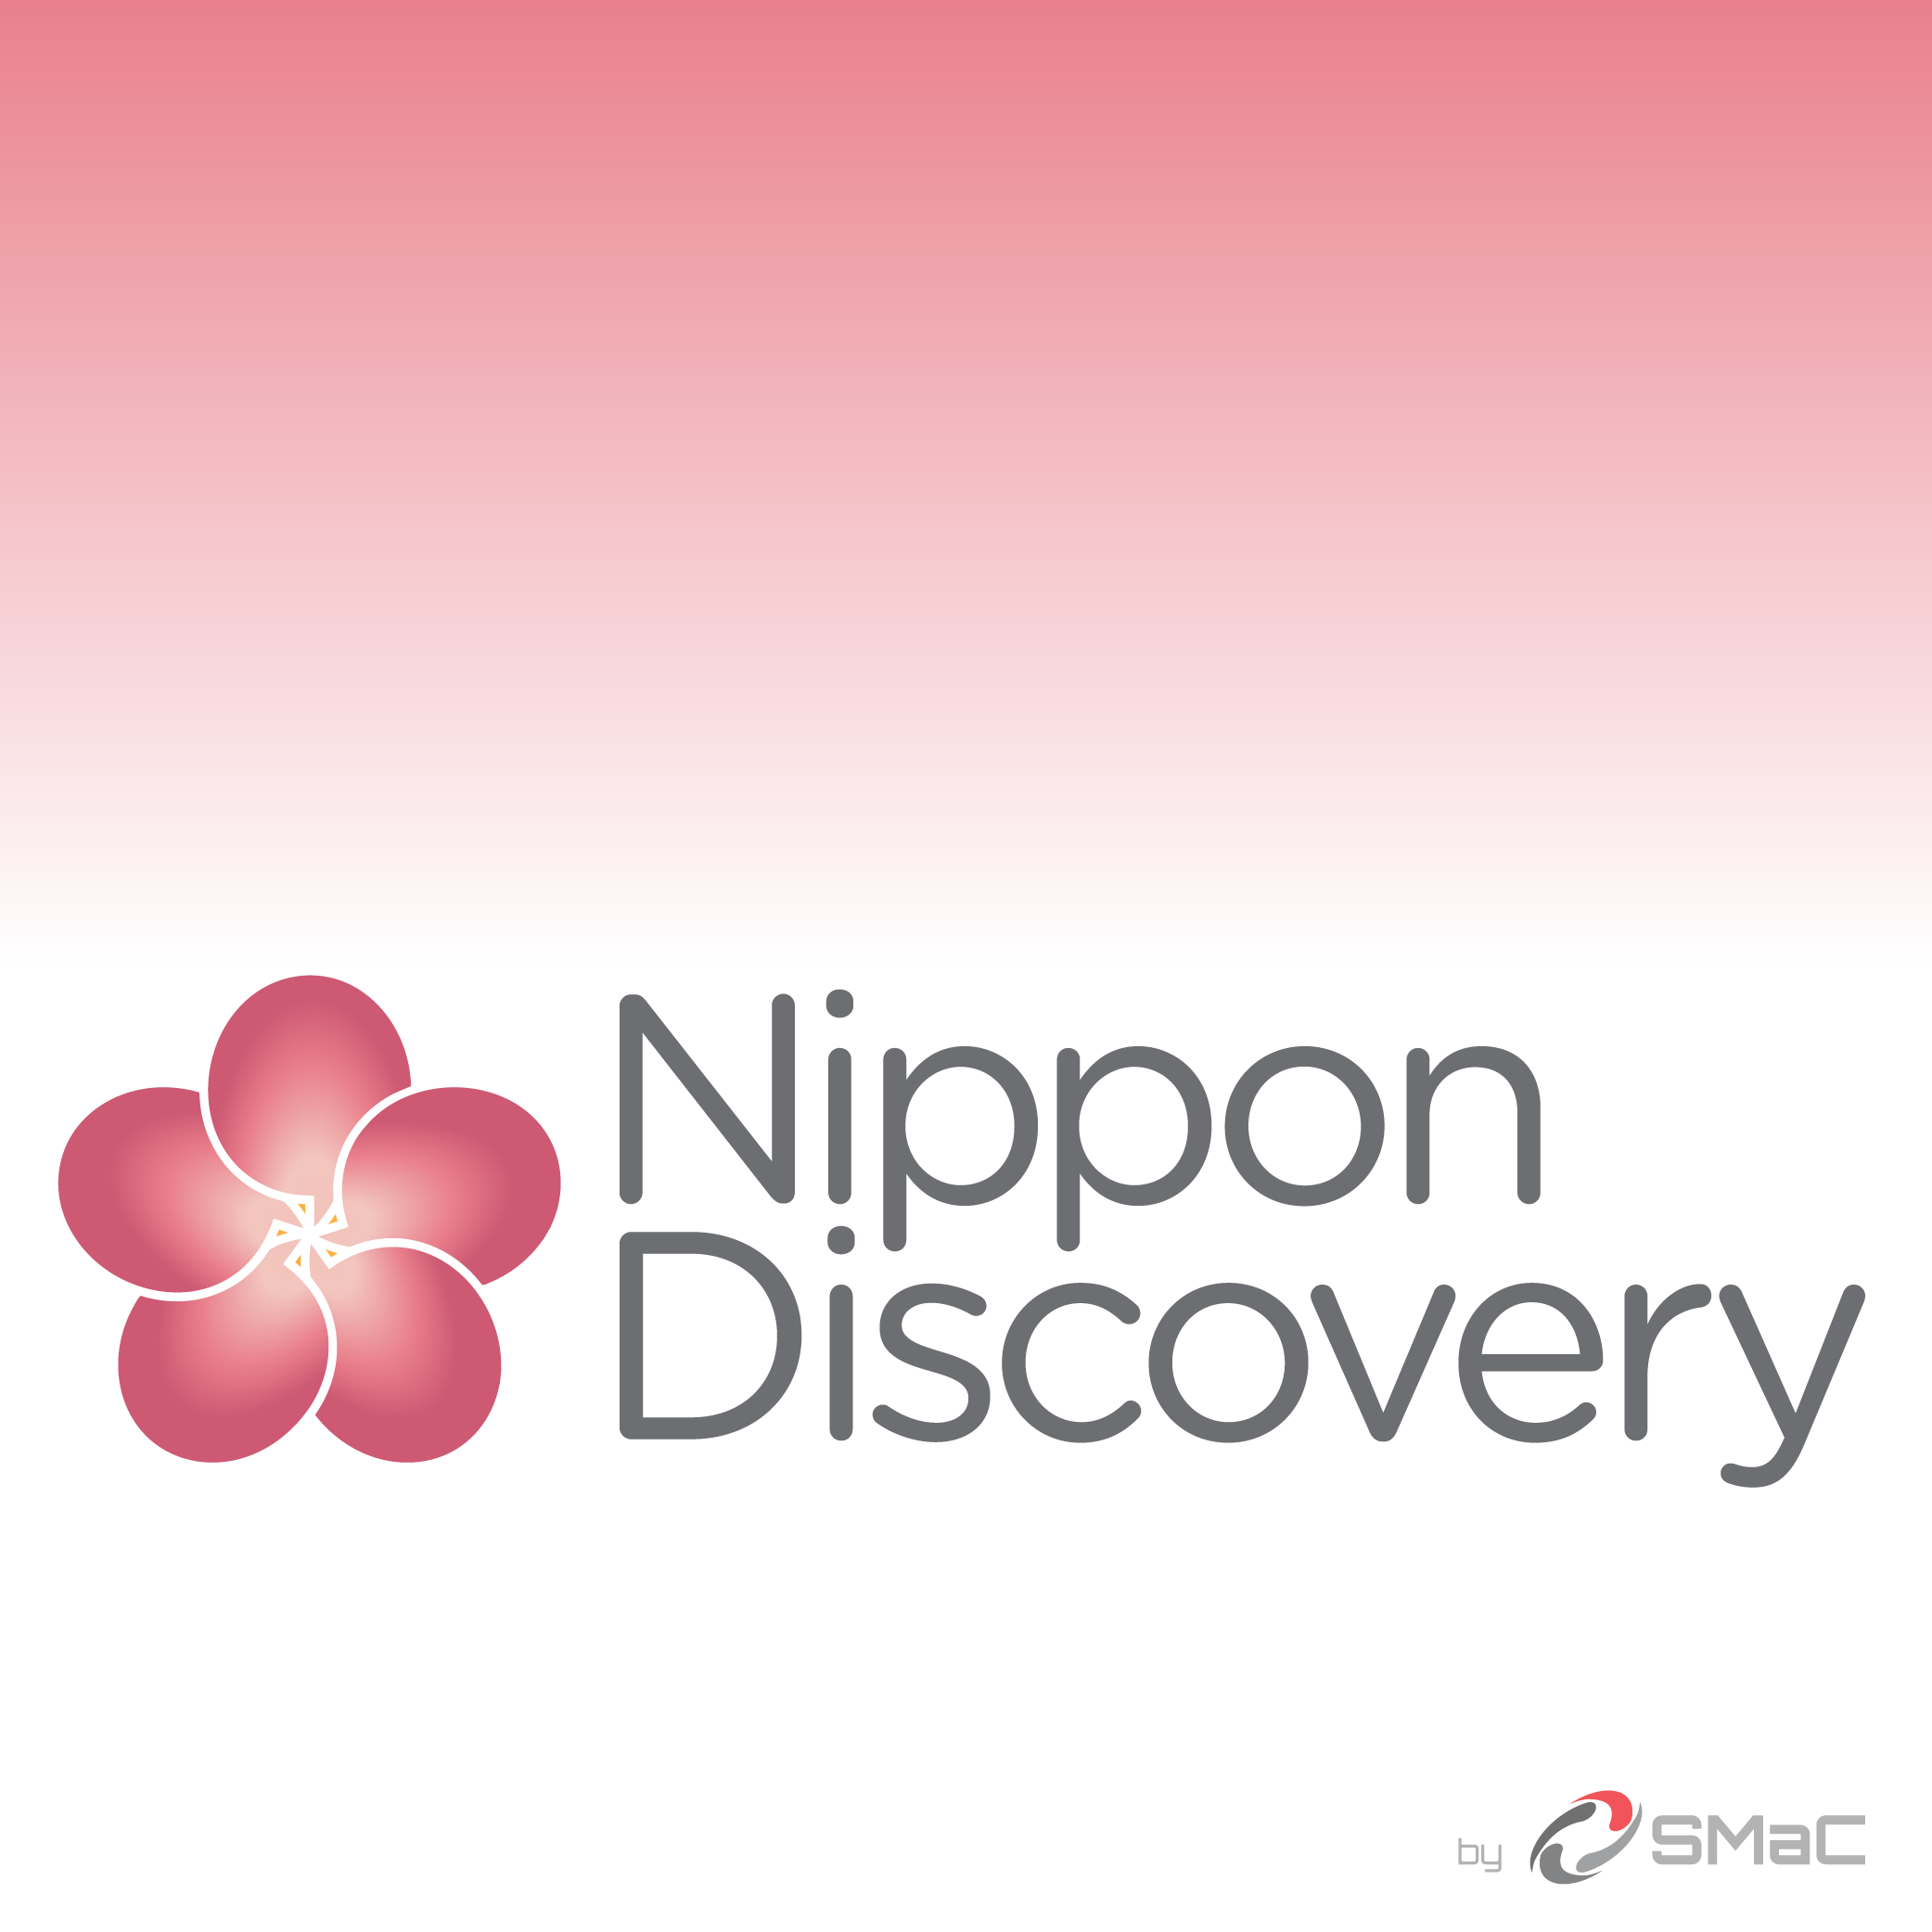 Nippon Discovery Philippines ロゴ